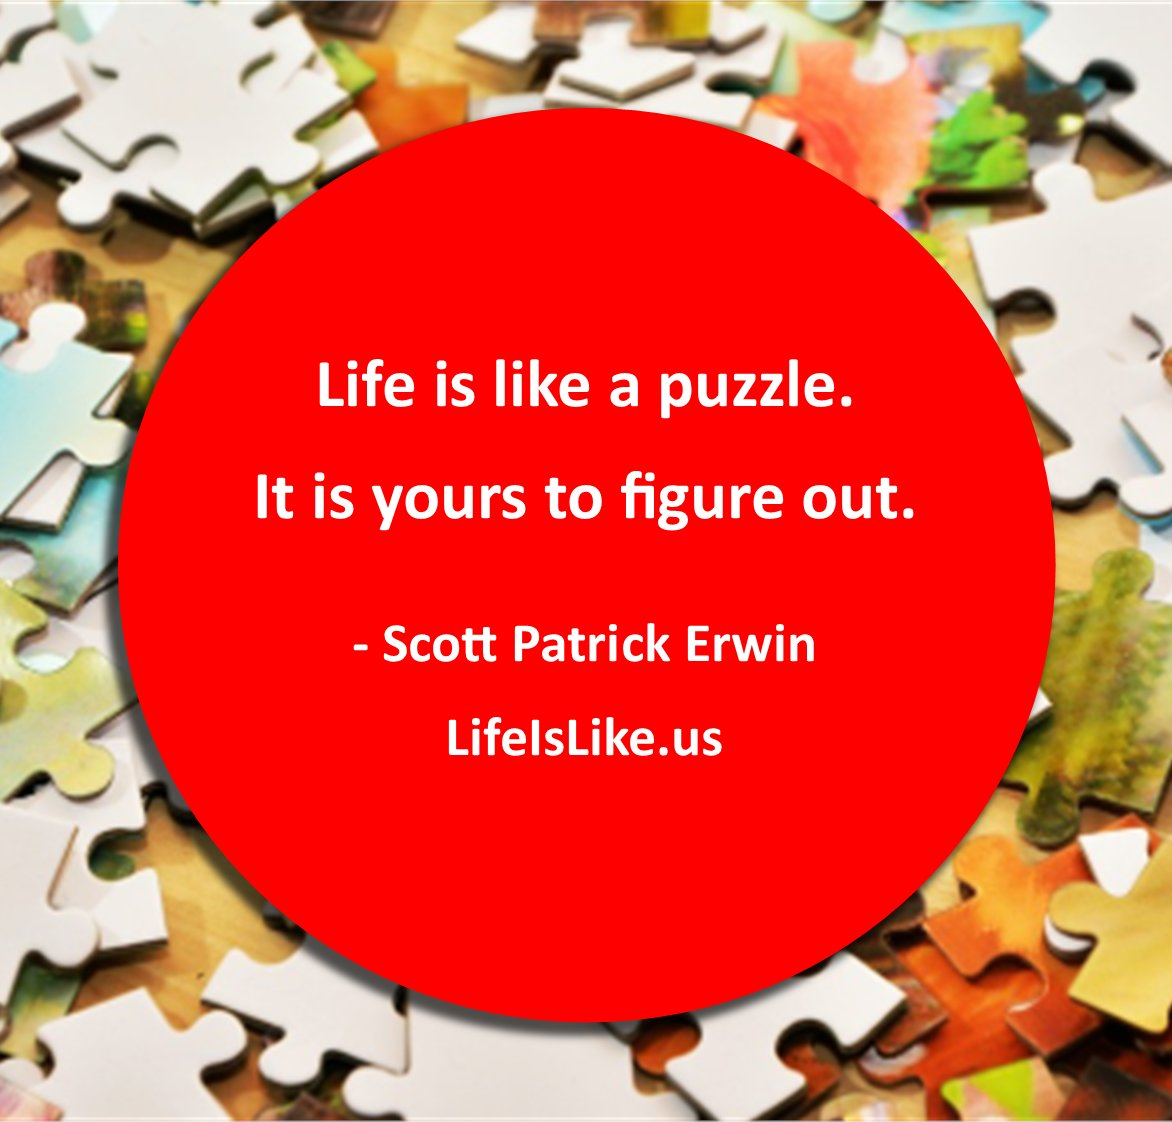 """""""Life is like a puzzle. It is yours to figure out.""""  - Scott Patrick Erwin . #lifeislikeus #lifeislikeapuzzle #lifeobservations #intention #focus #positivevibes #positivequotes  #life #positivemindset #goals #dream #motivationalquotes #successmindset #mindset #scottpatrickerwinpic.twitter.com/c8Mgng2xzZ"""